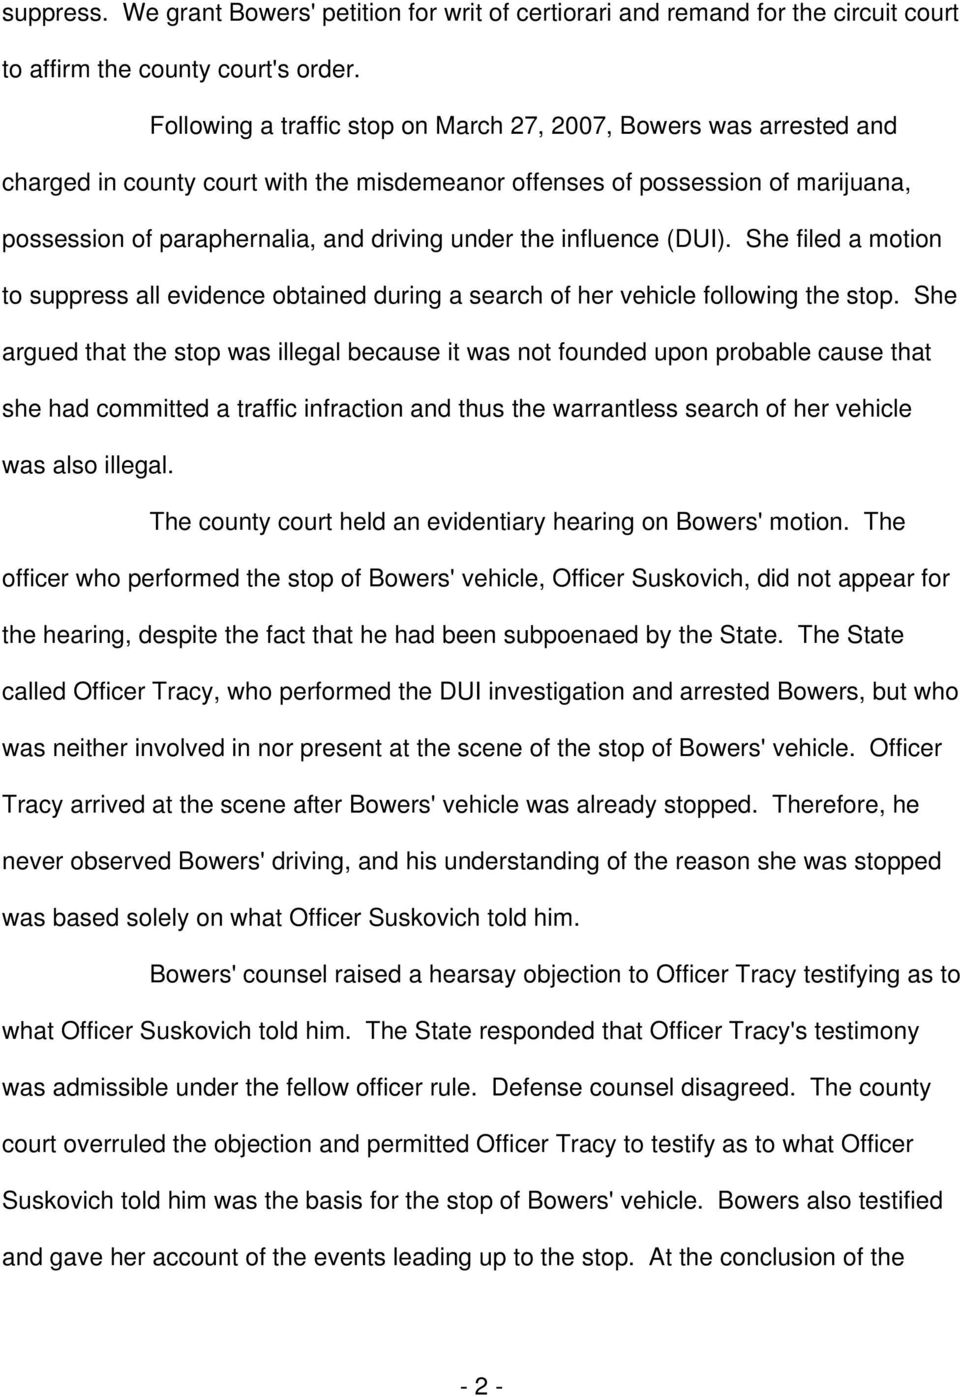 the influence (DUI. She filed a motion to suppress all evidence obtained during a search of her vehicle following the stop.